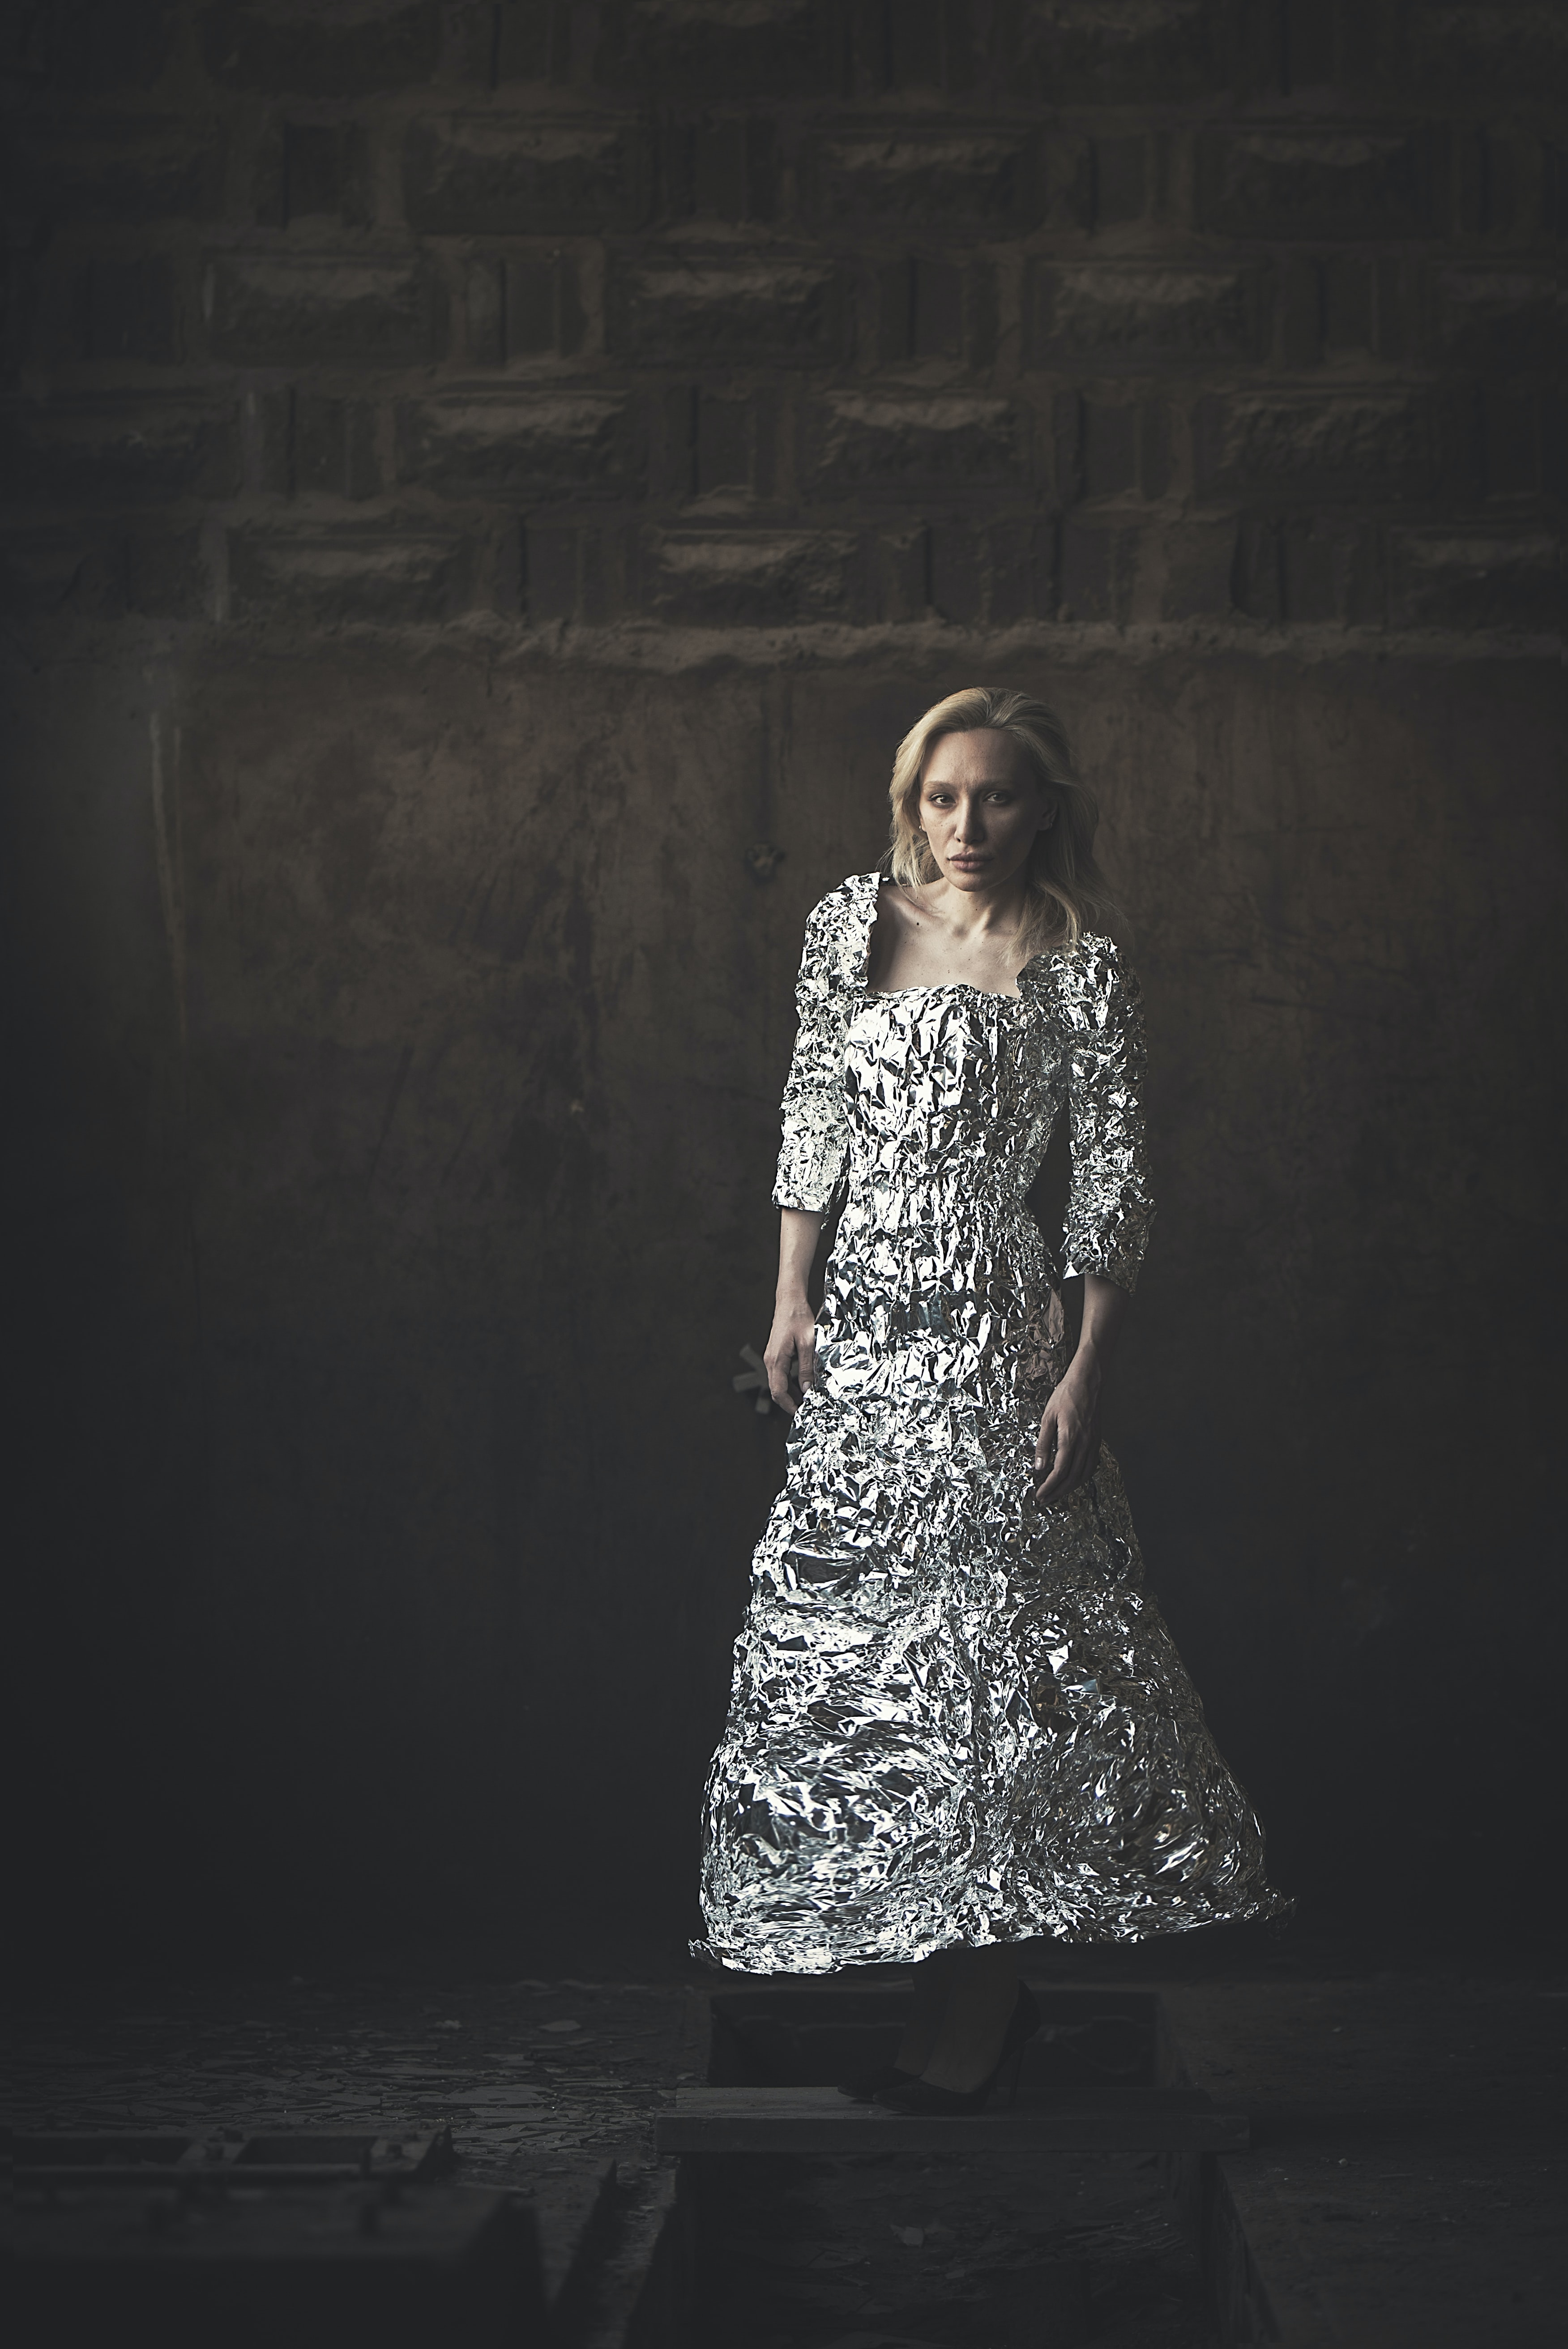 woman with silver quarter-sleeved dress beside wall